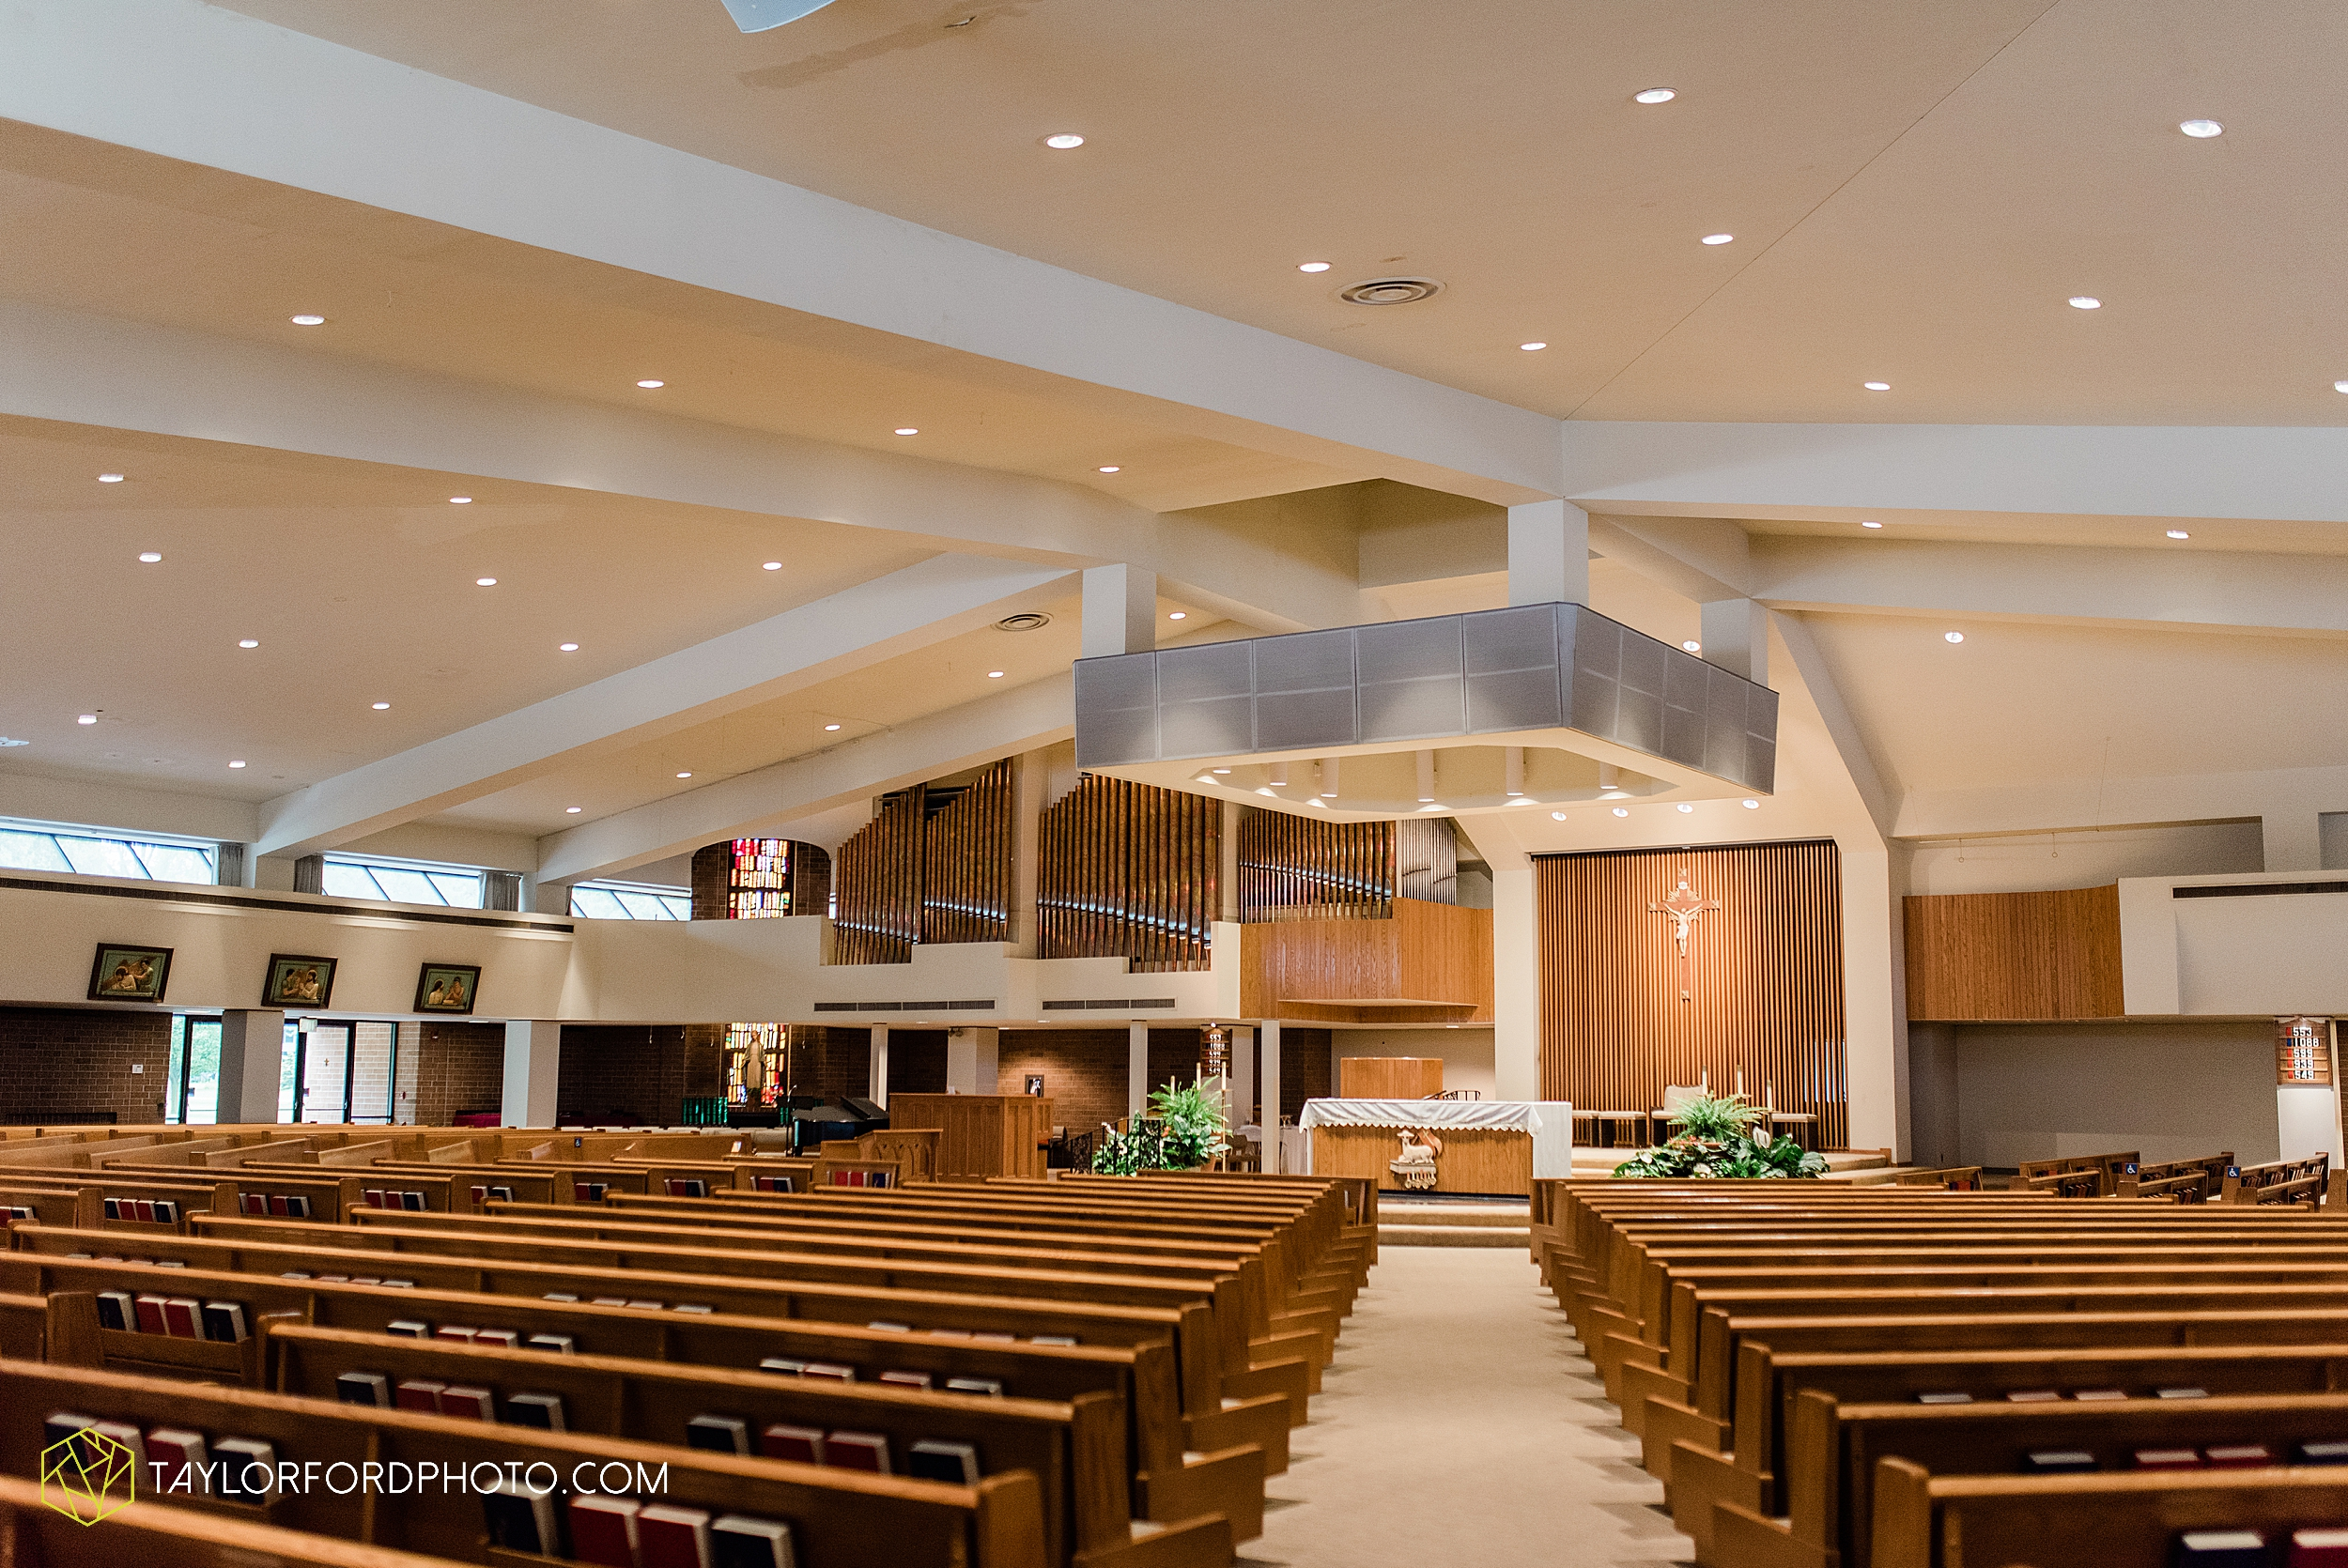 sullivan-st-francis-university-performing-arts-center-usf-saint-charles-borromeo-catholic-church-downtown-fort-wayne-indiana-wedding-photography-taylor-ford-hirschy-photographer_3220.jpg